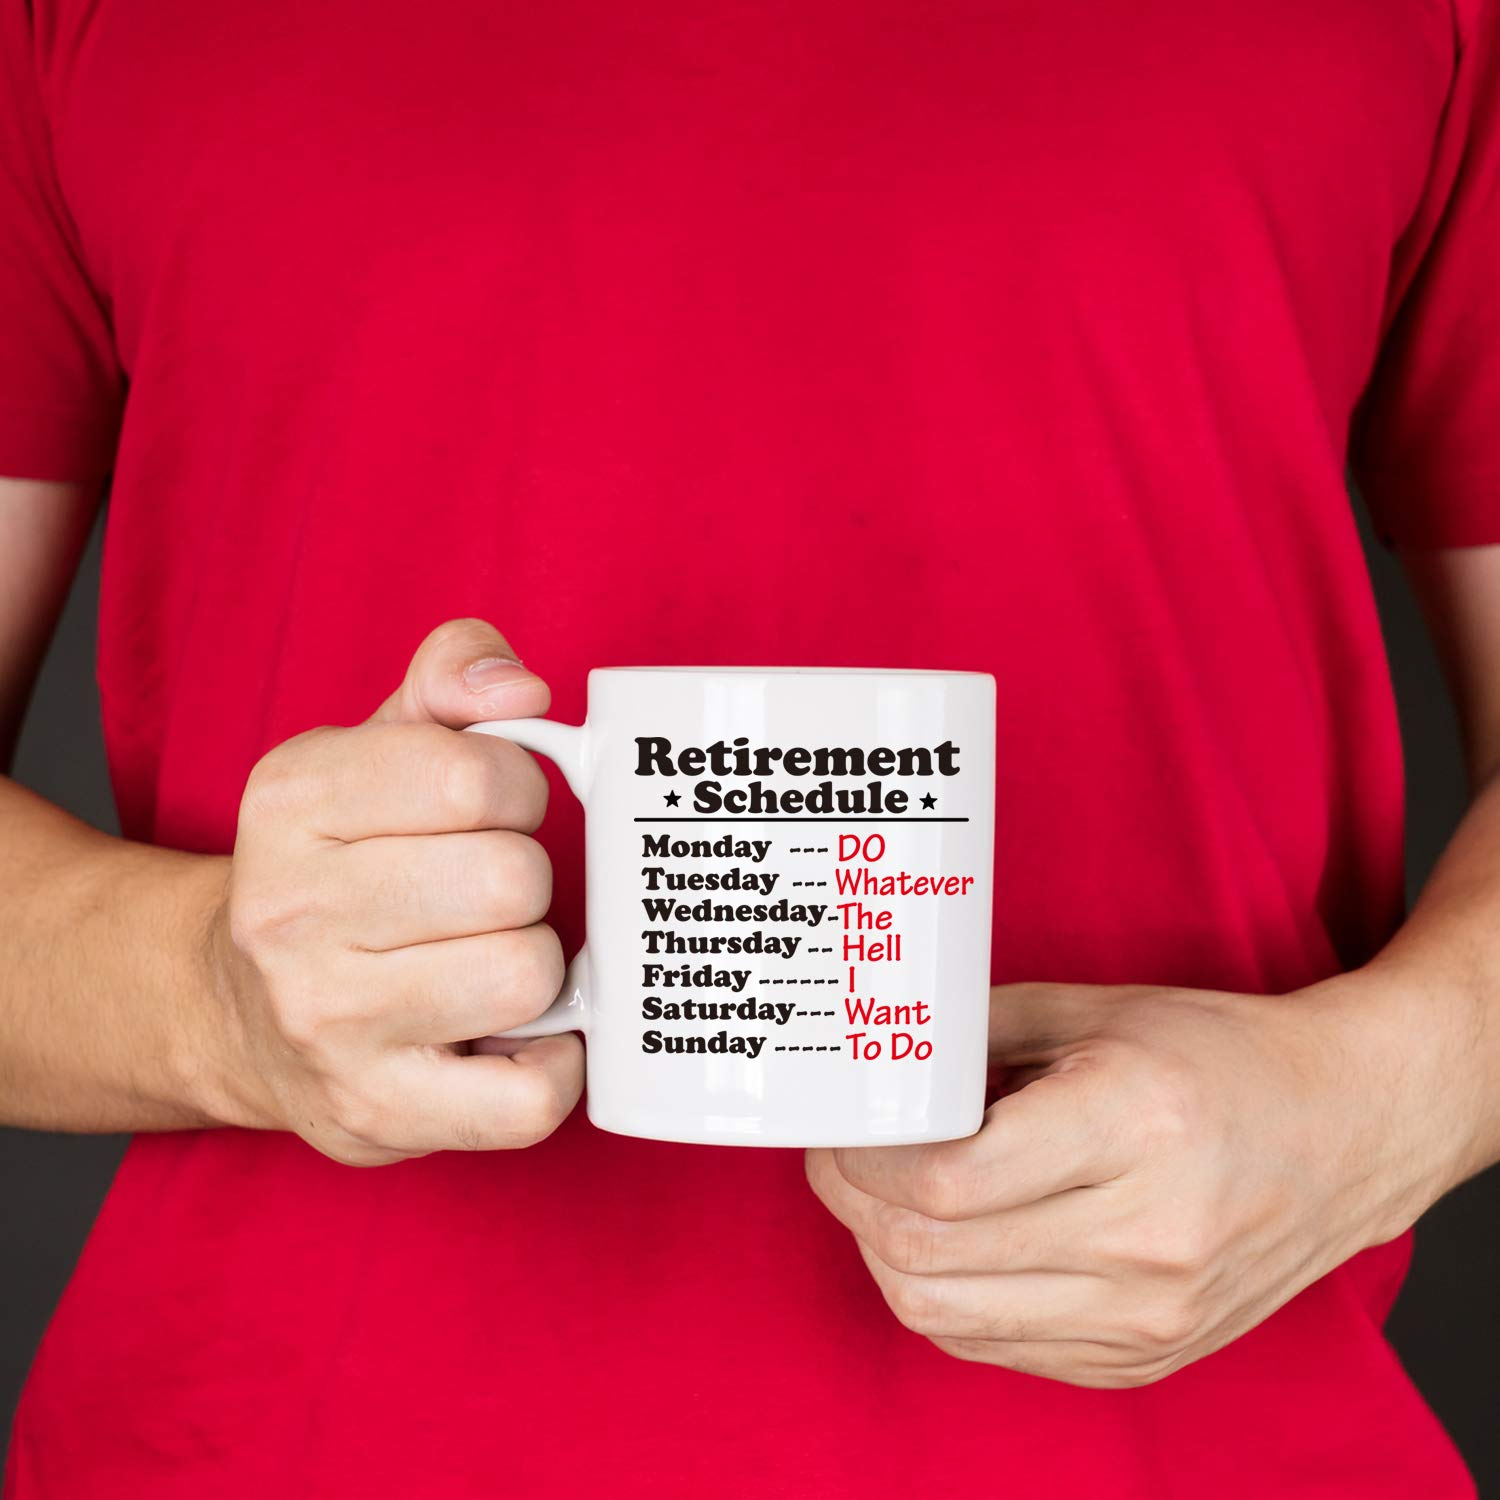 110z Funny Retirement Gift Mug for Women Men Dad Mom Gag Retirement Schedule Calendar Office Humor Coworker Gift Coffee Mug Tea Cup for Coworkers Office /& Family.